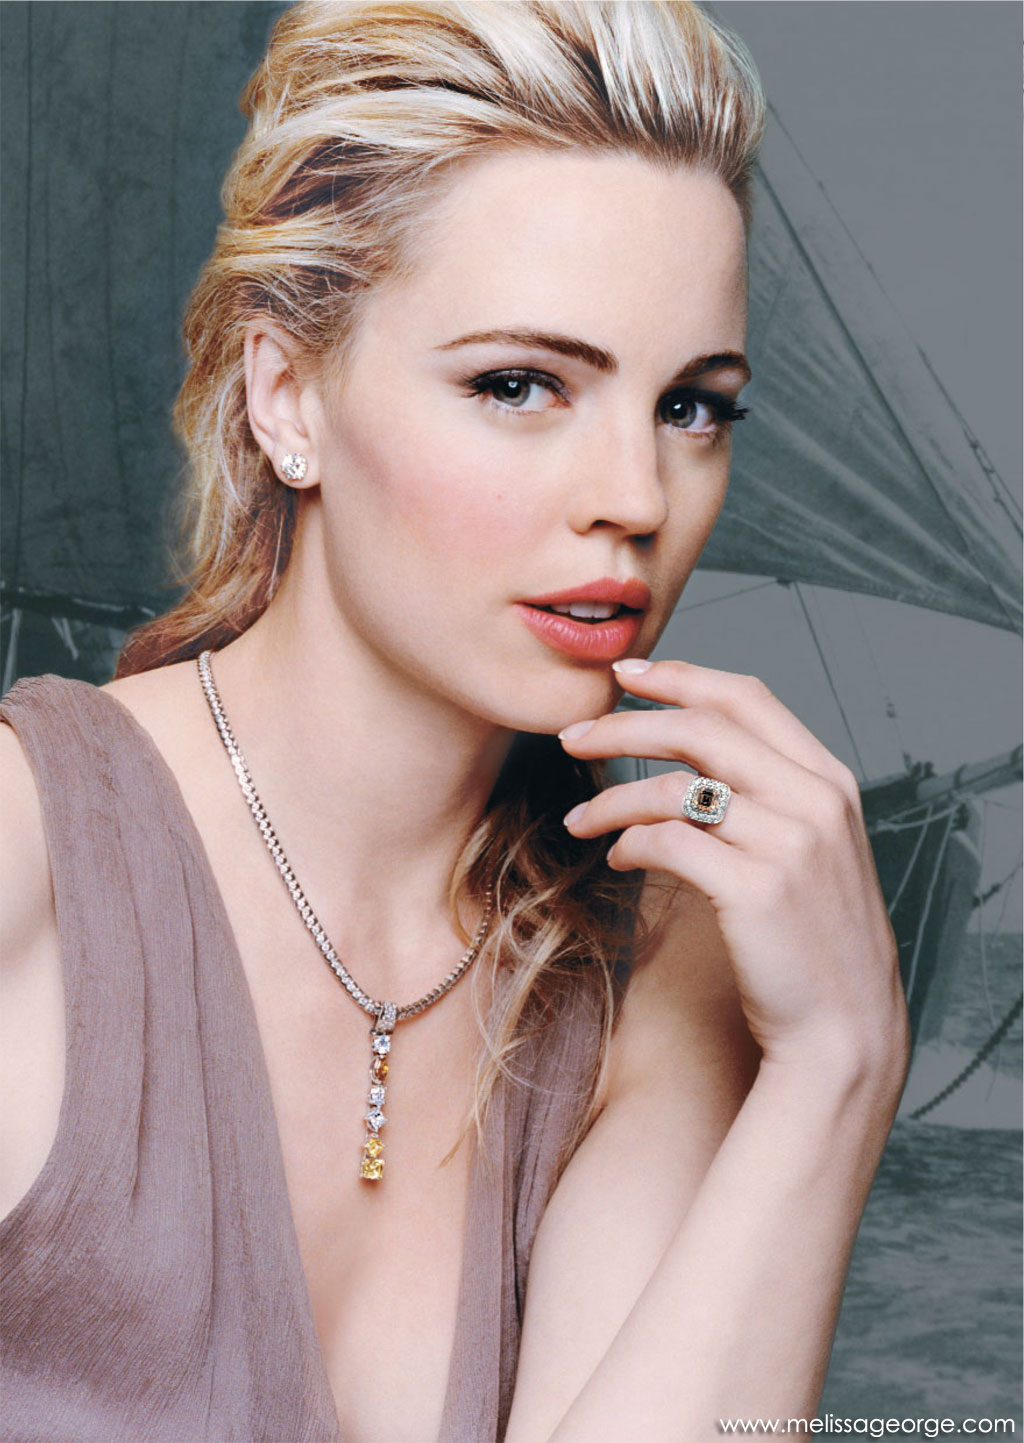 Melissa George - Wallpaper Actress